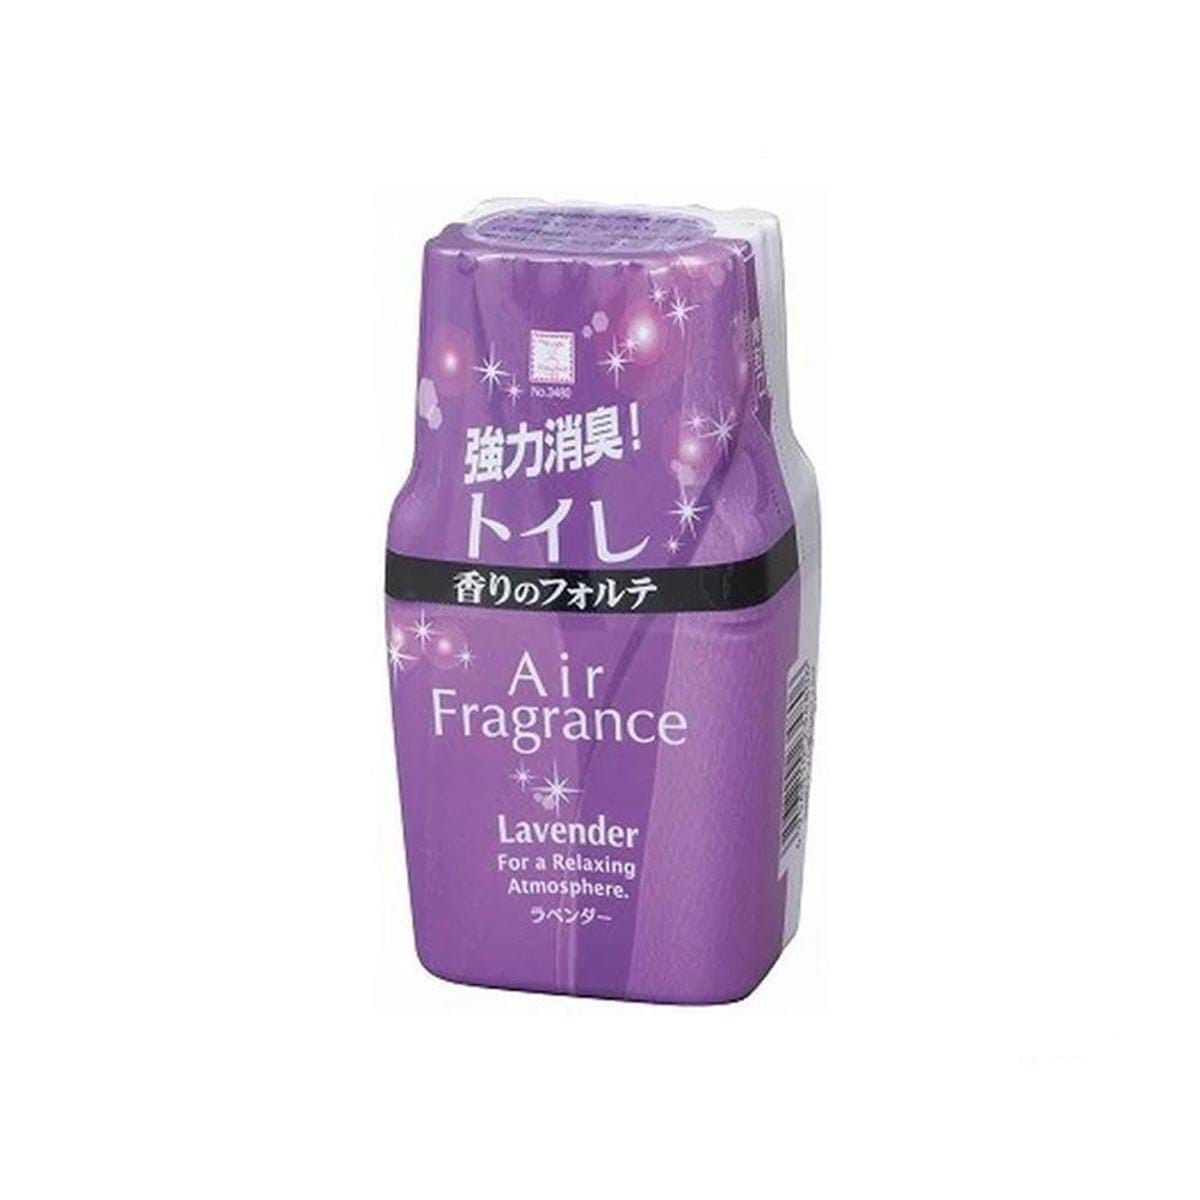 Japanese Deodorant For Toilet Lavender Scent